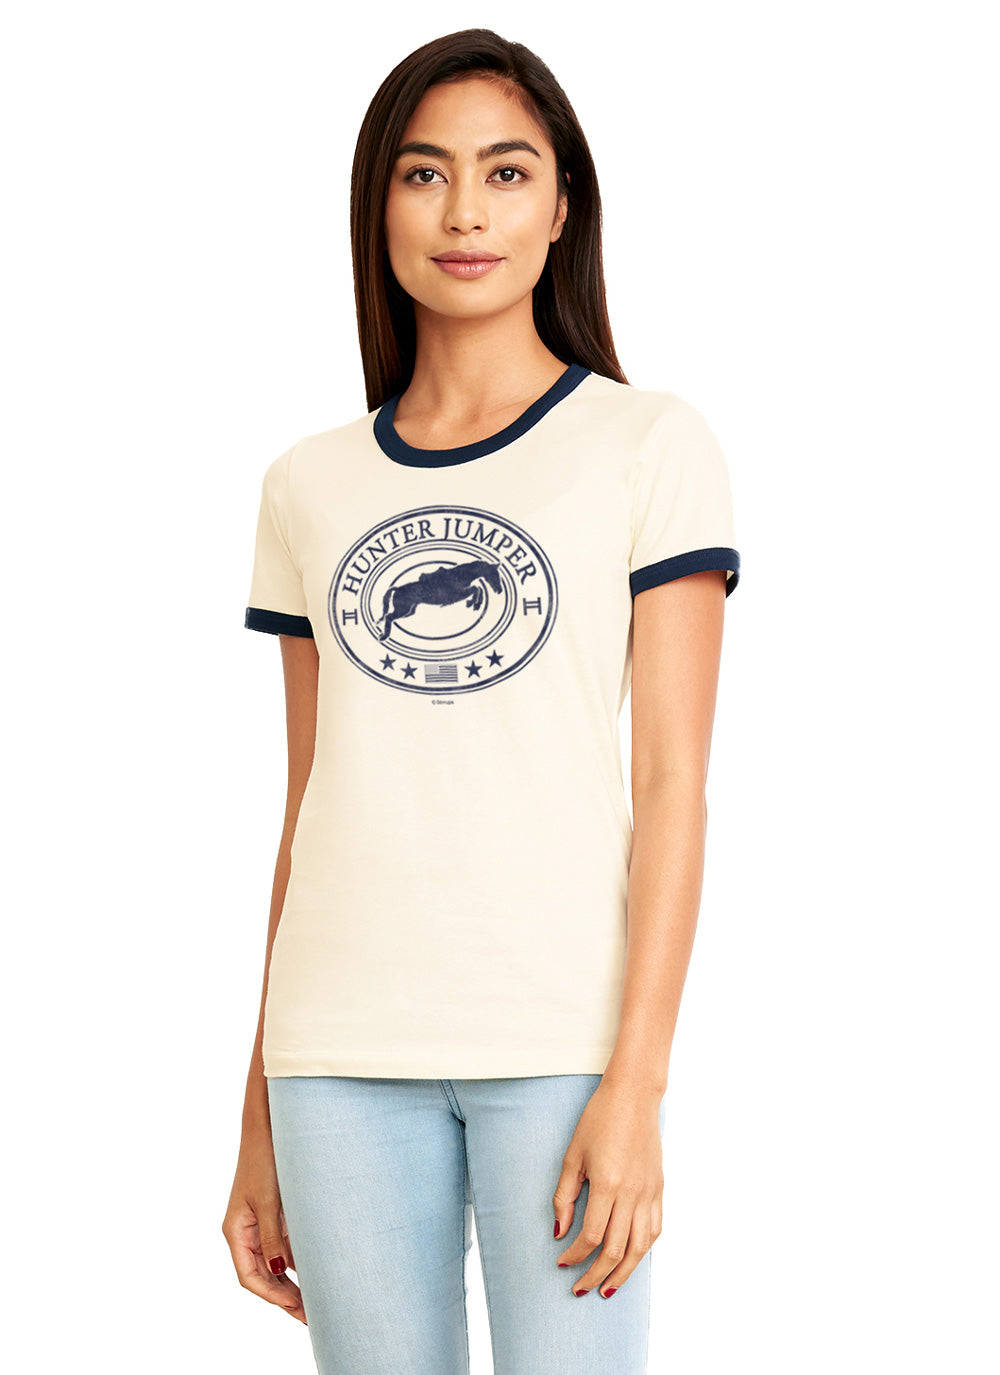 Hunter Jumper Ladies Short Sleeve Ringer Tee 19128